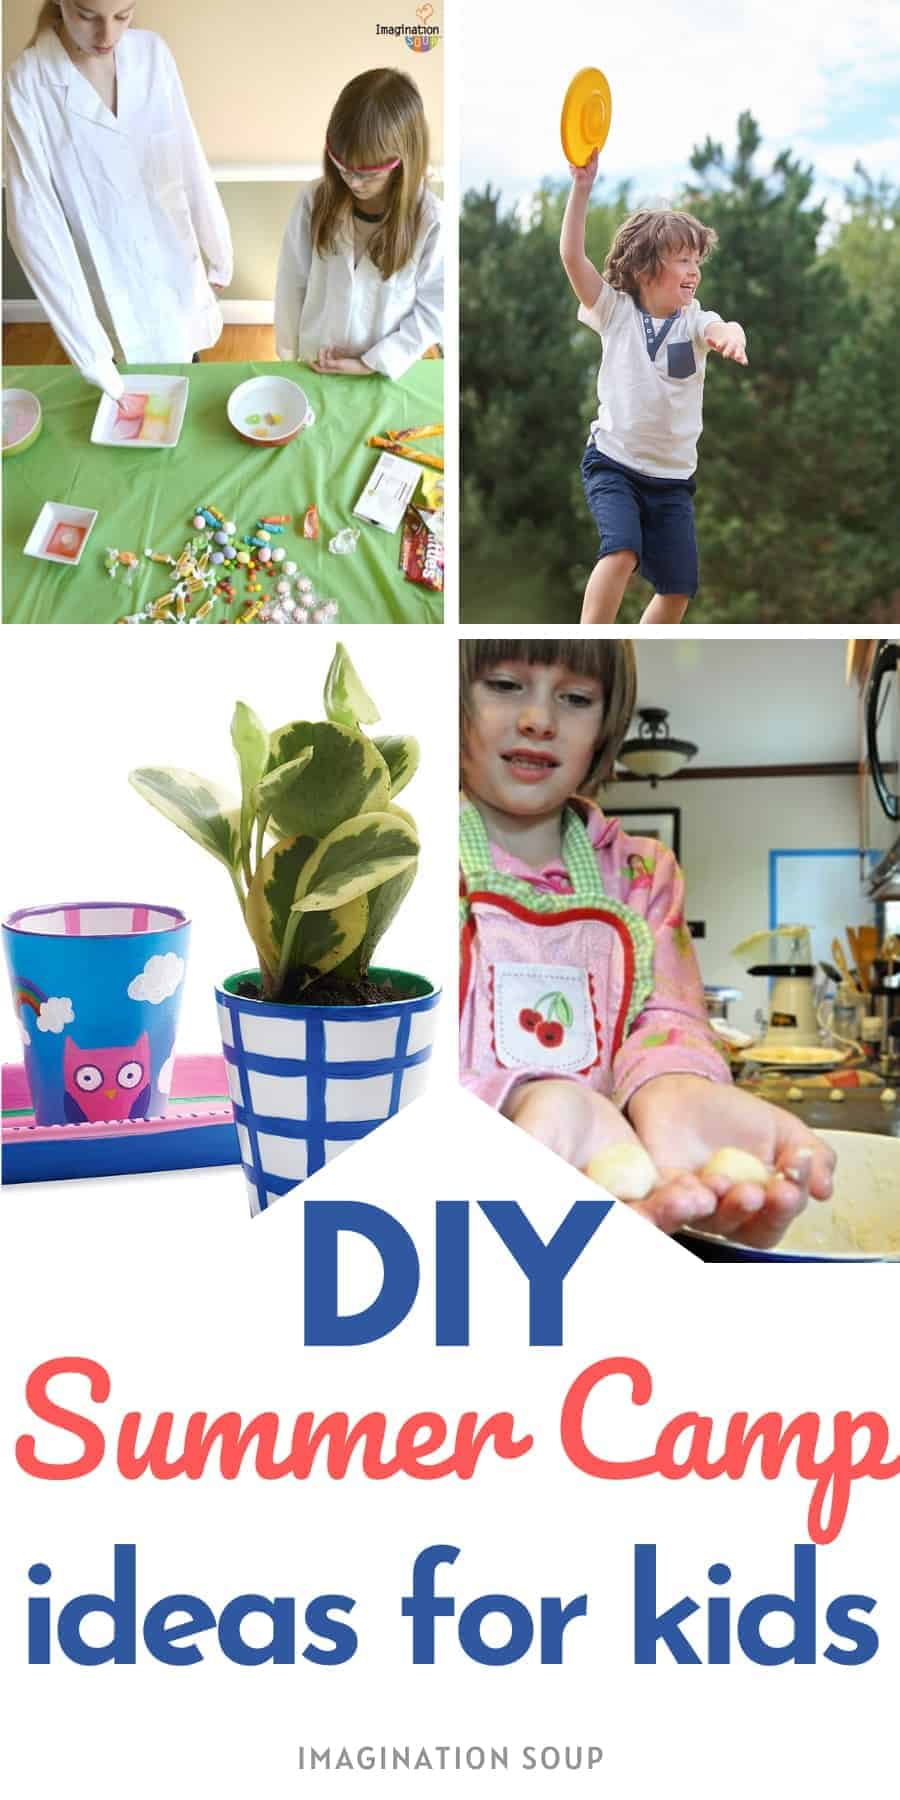 DIY Summer Camp Ideas for Kids